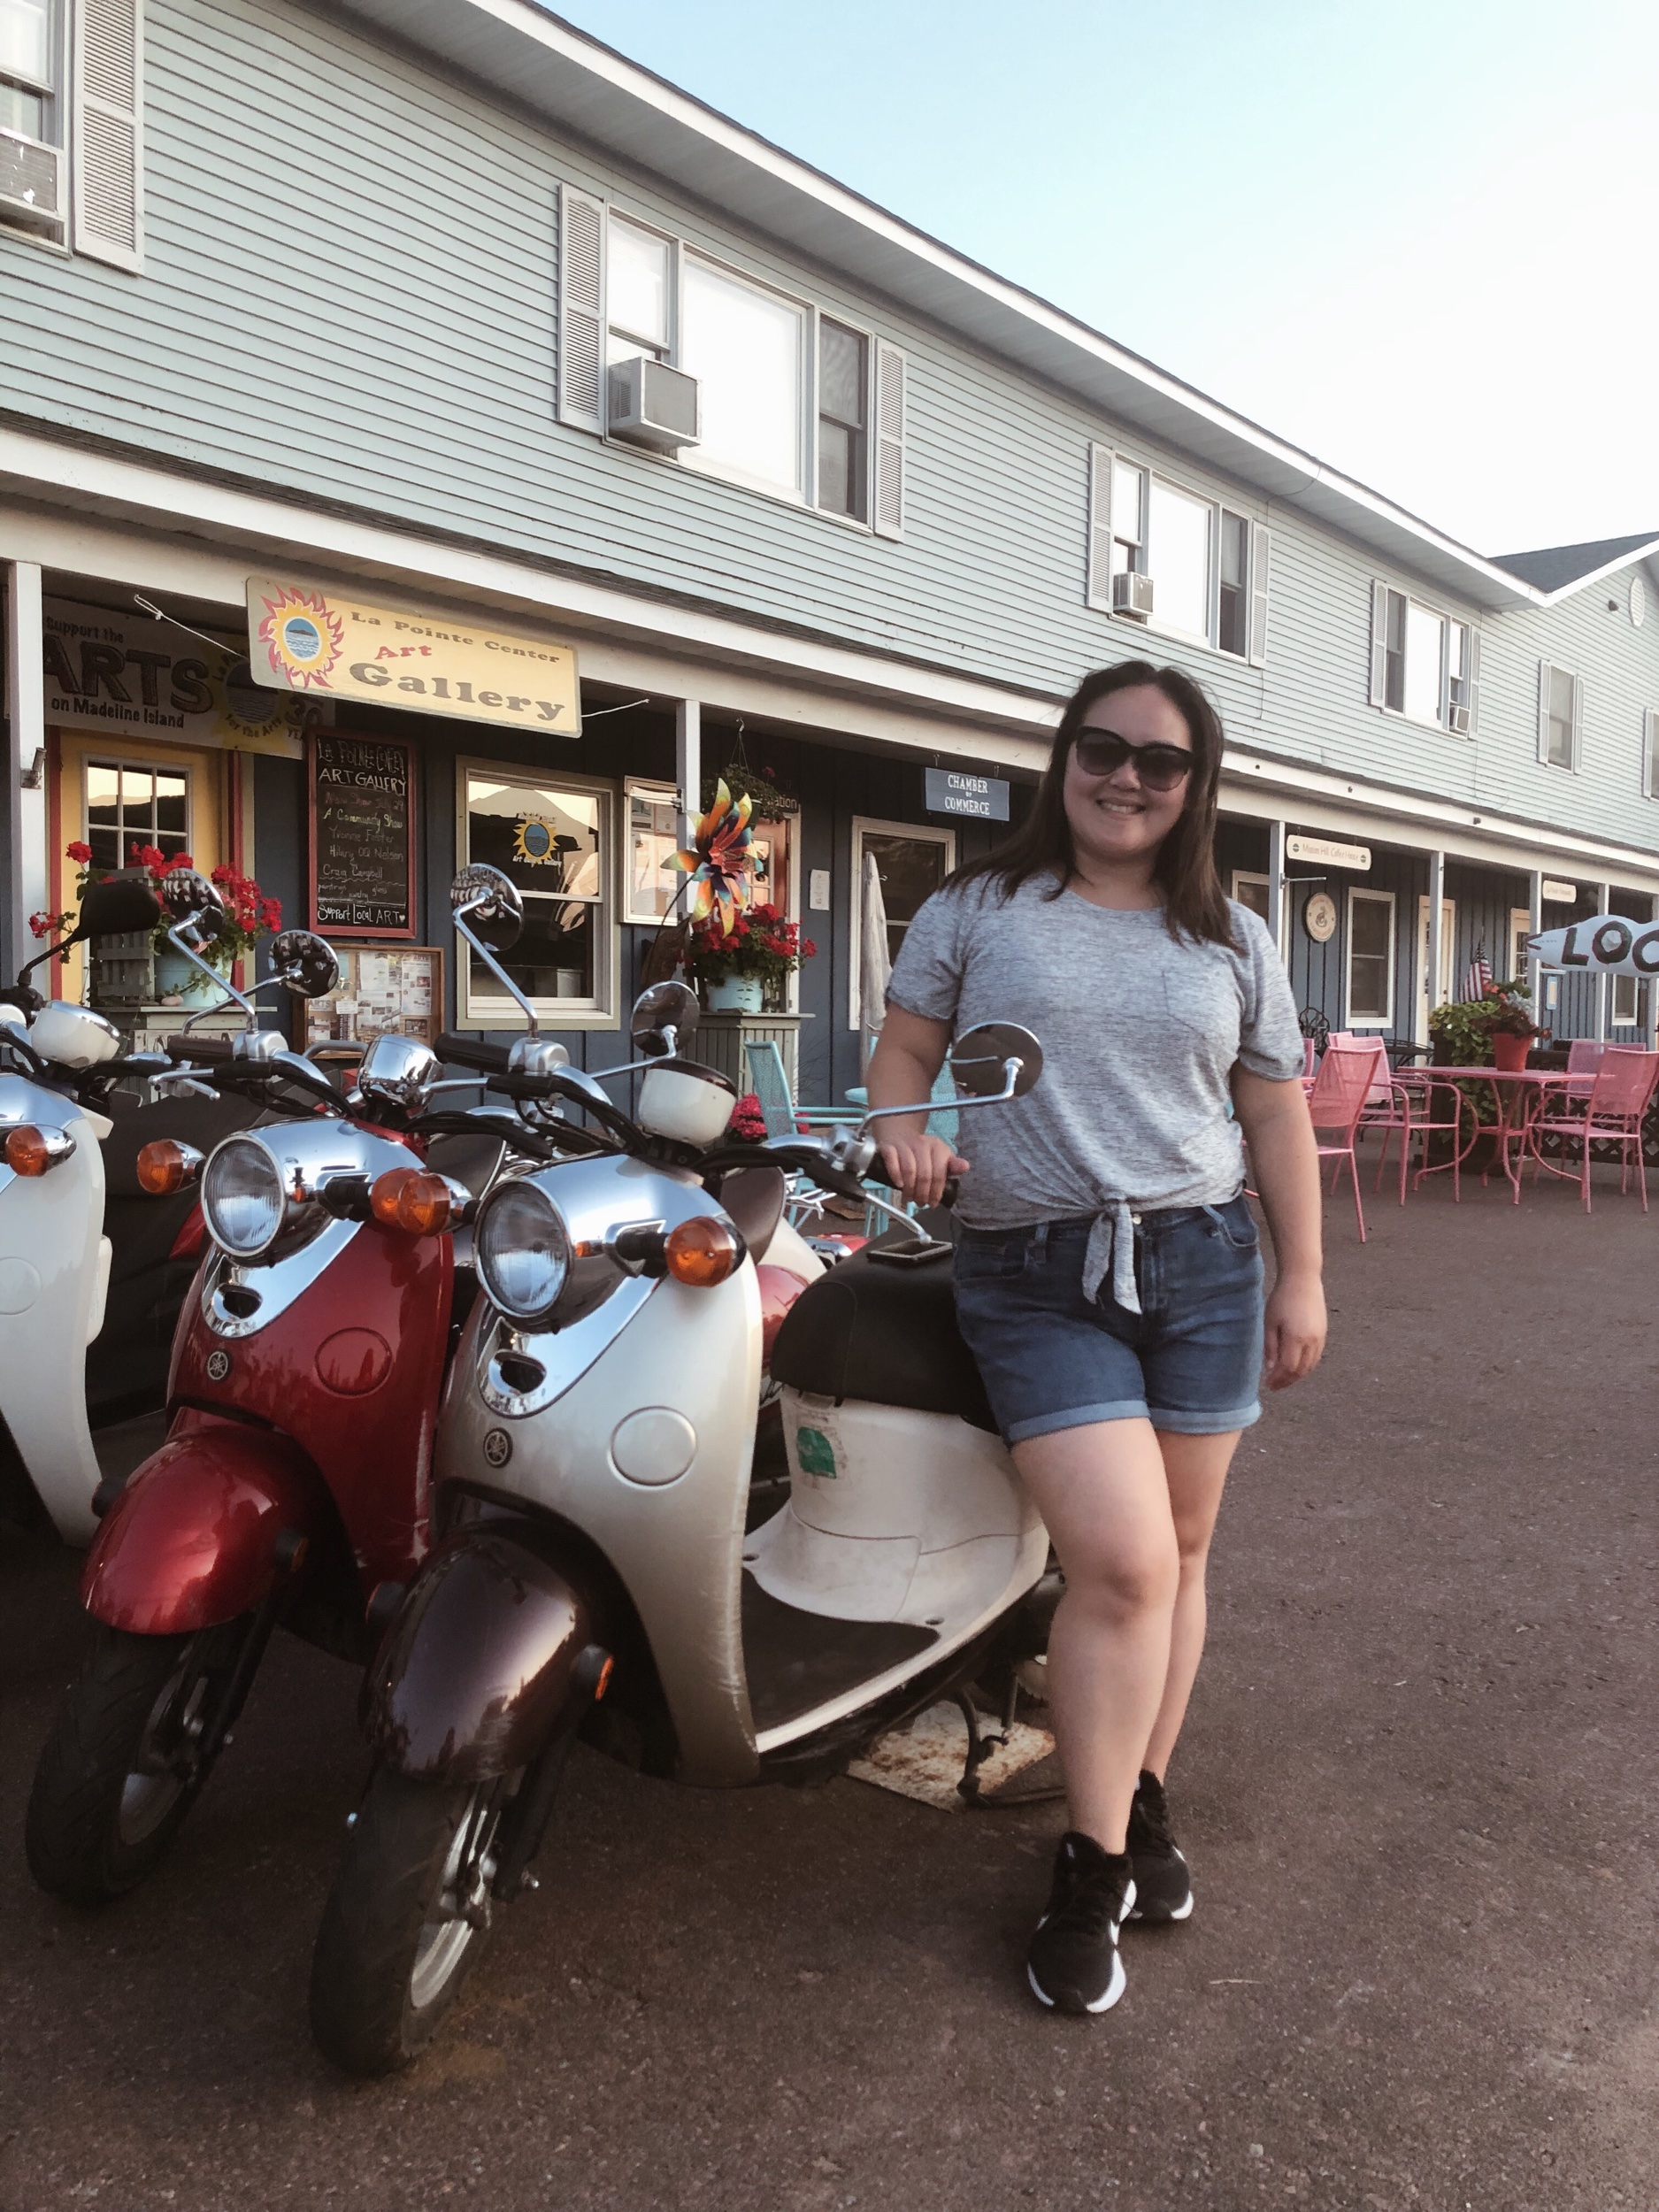 Emily lookin hot on a moped we didn't rent